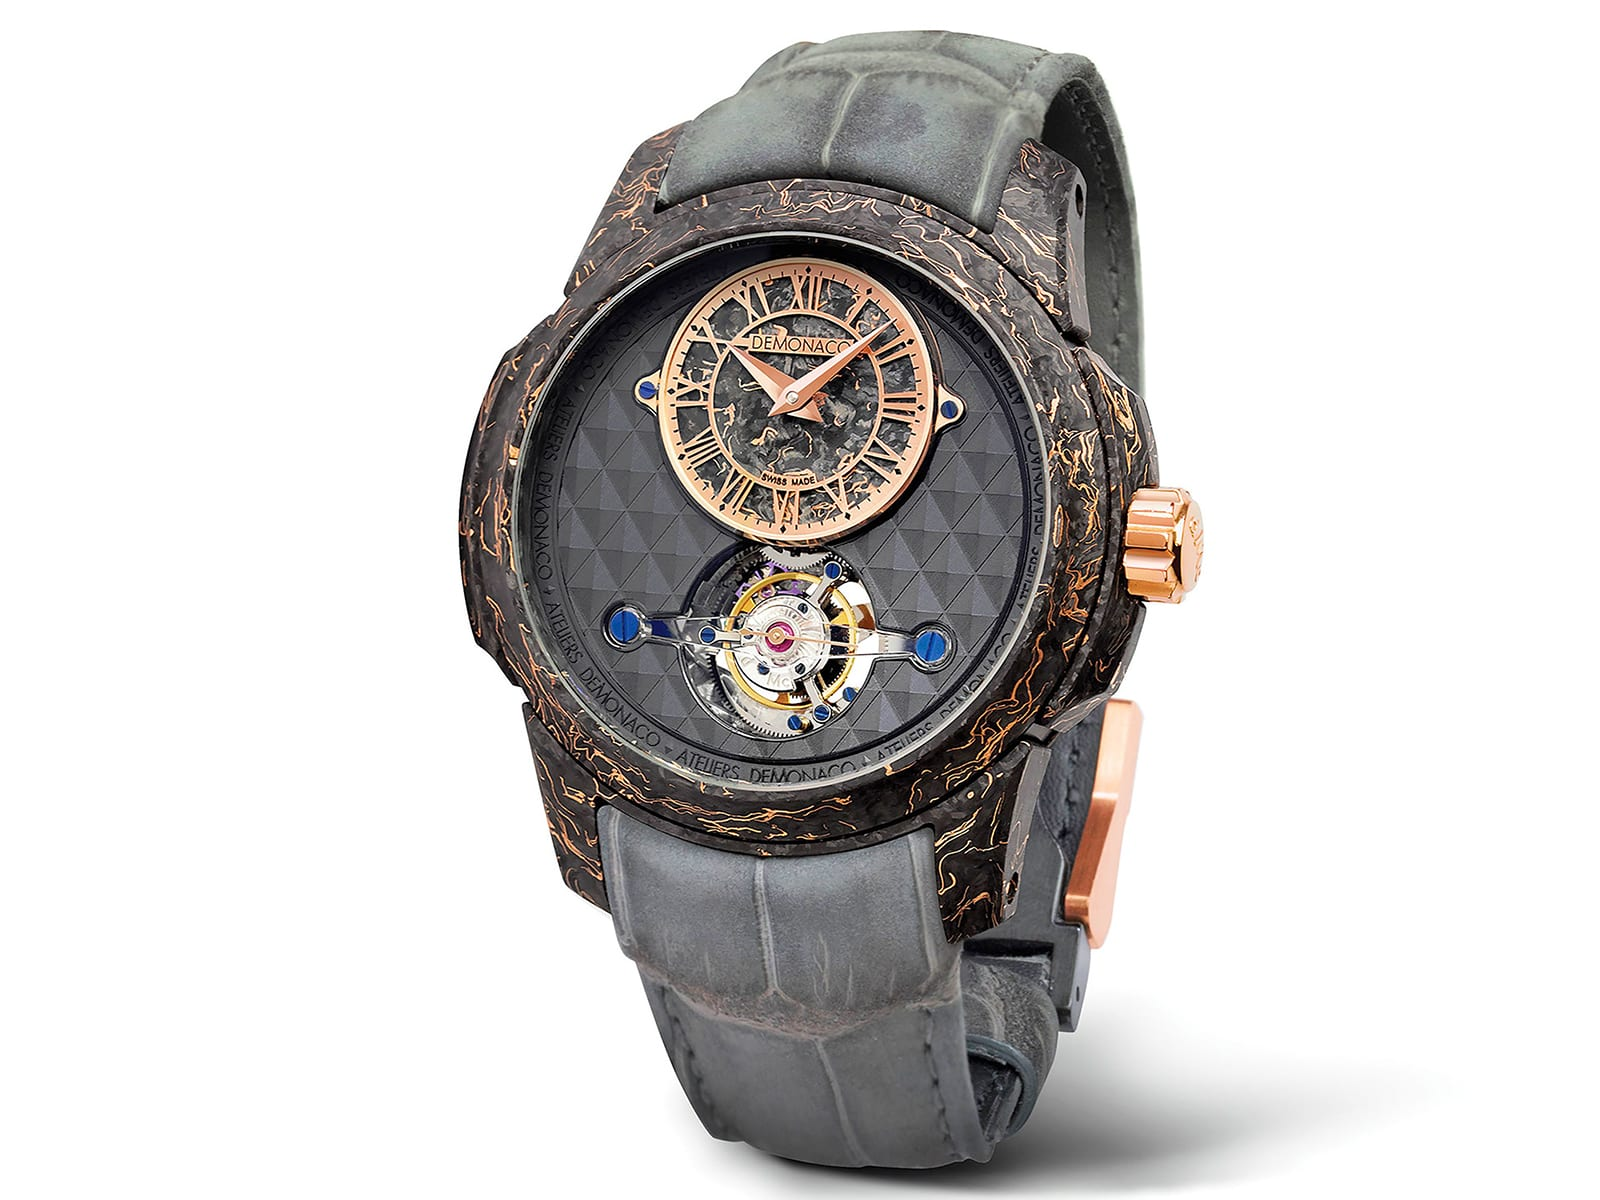 ateliers-de-monaco-tourbillon-oculus-1297-only-watch.jpg